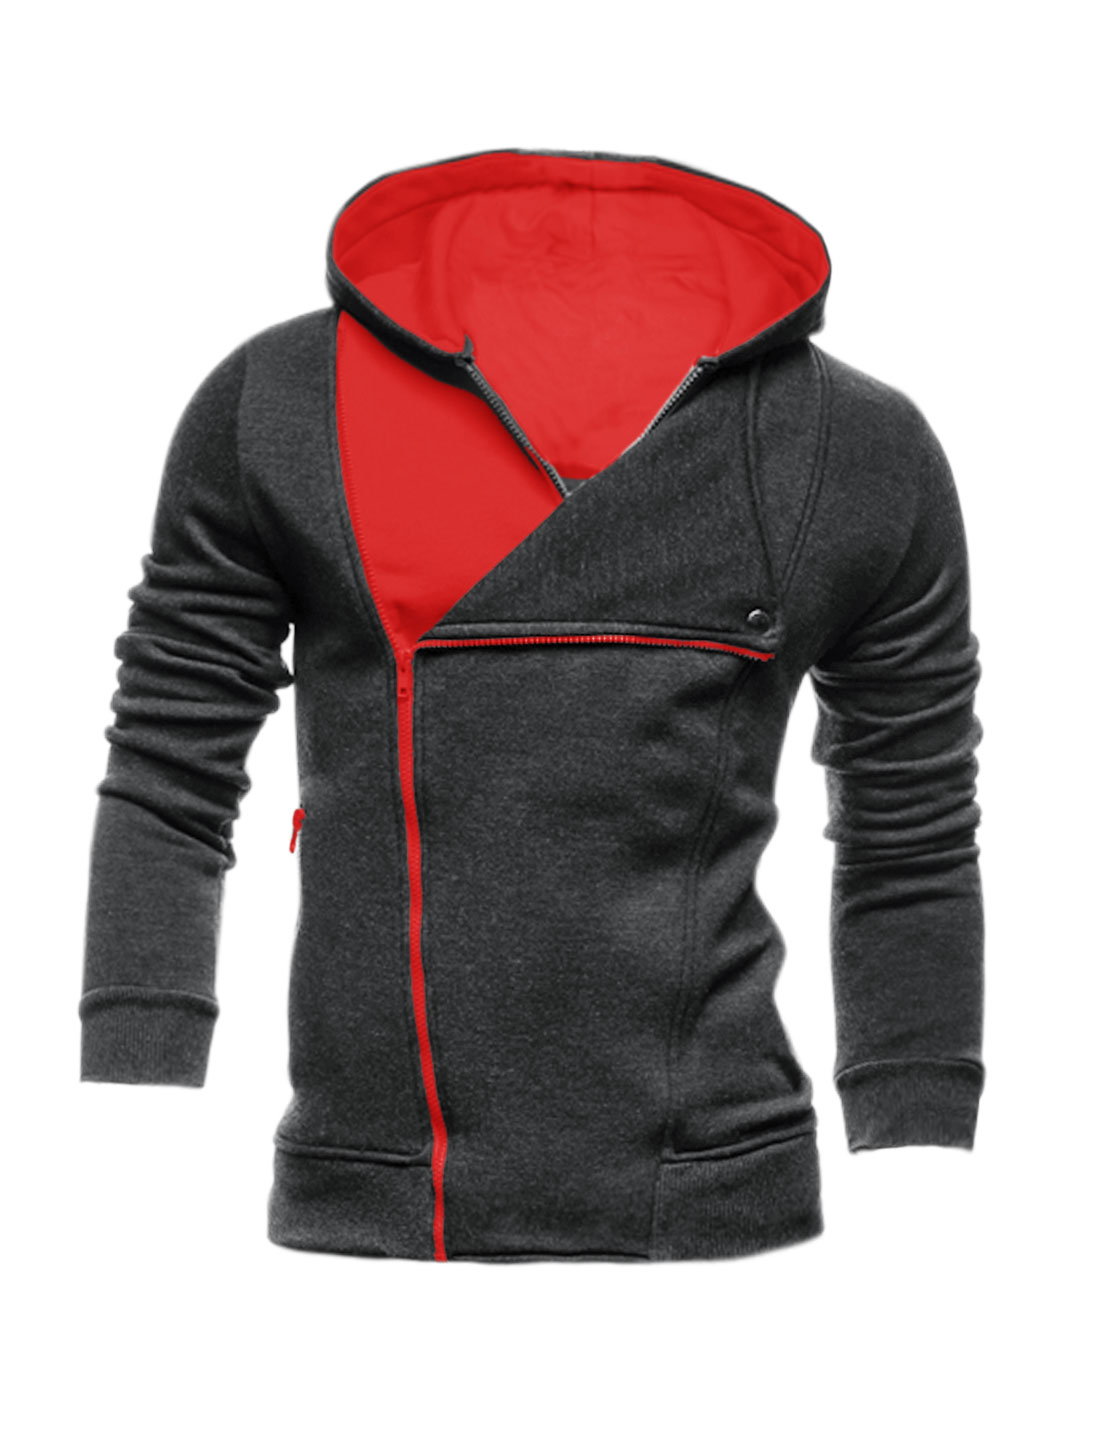 Men Inclined Zipper Layered Color Block Hooded Jacket Gray M